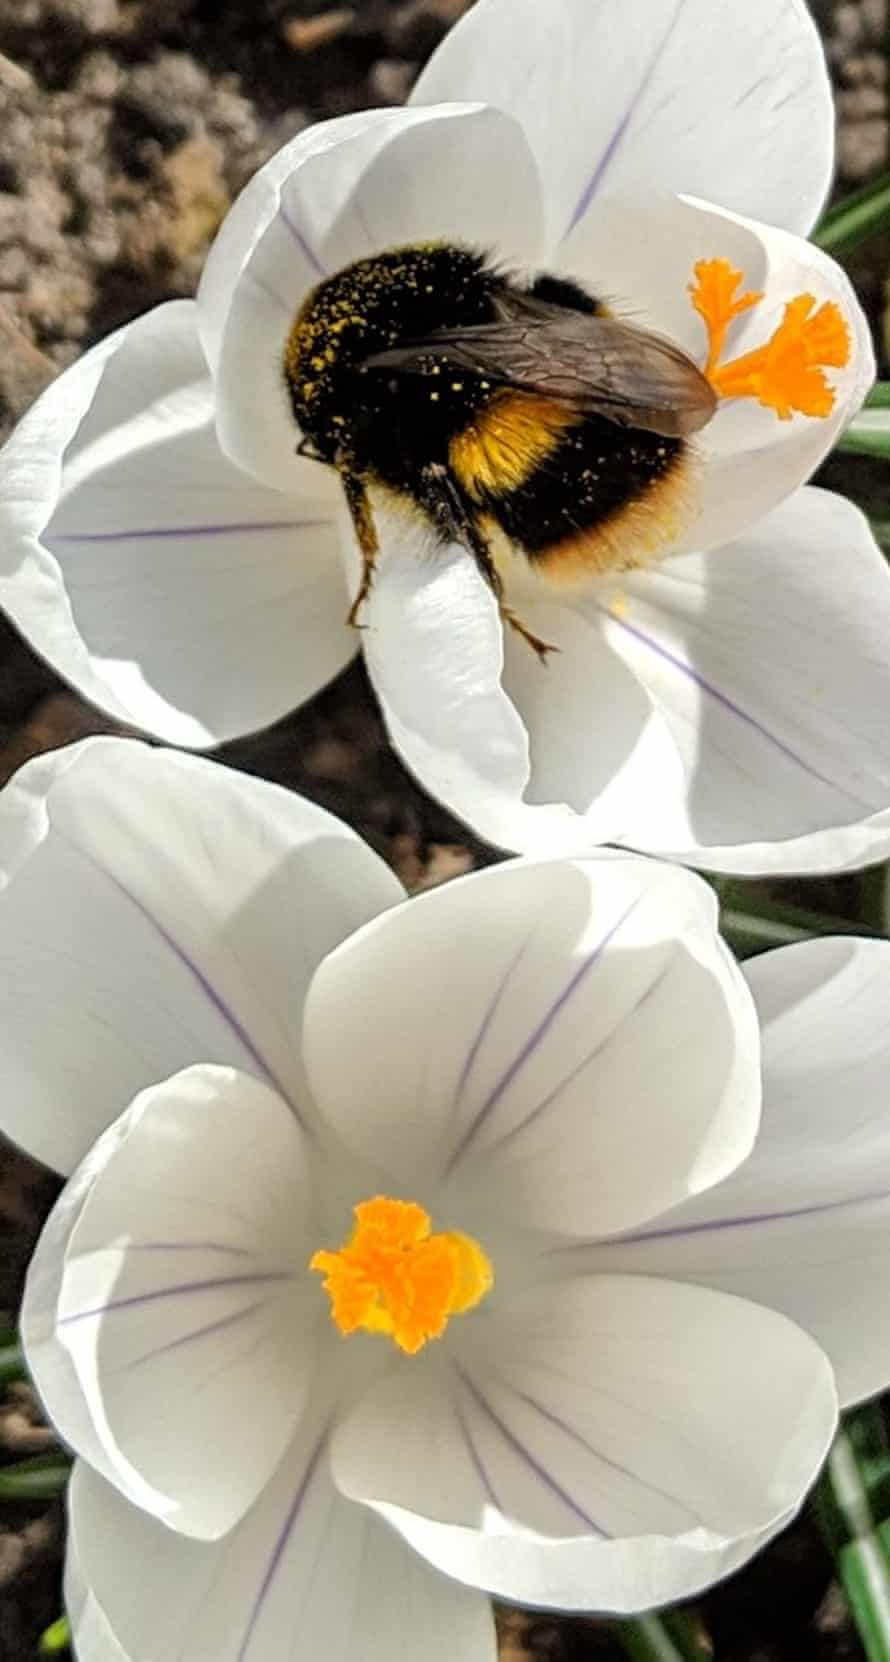 Many readers said they'd seen bumblebees in the garden.